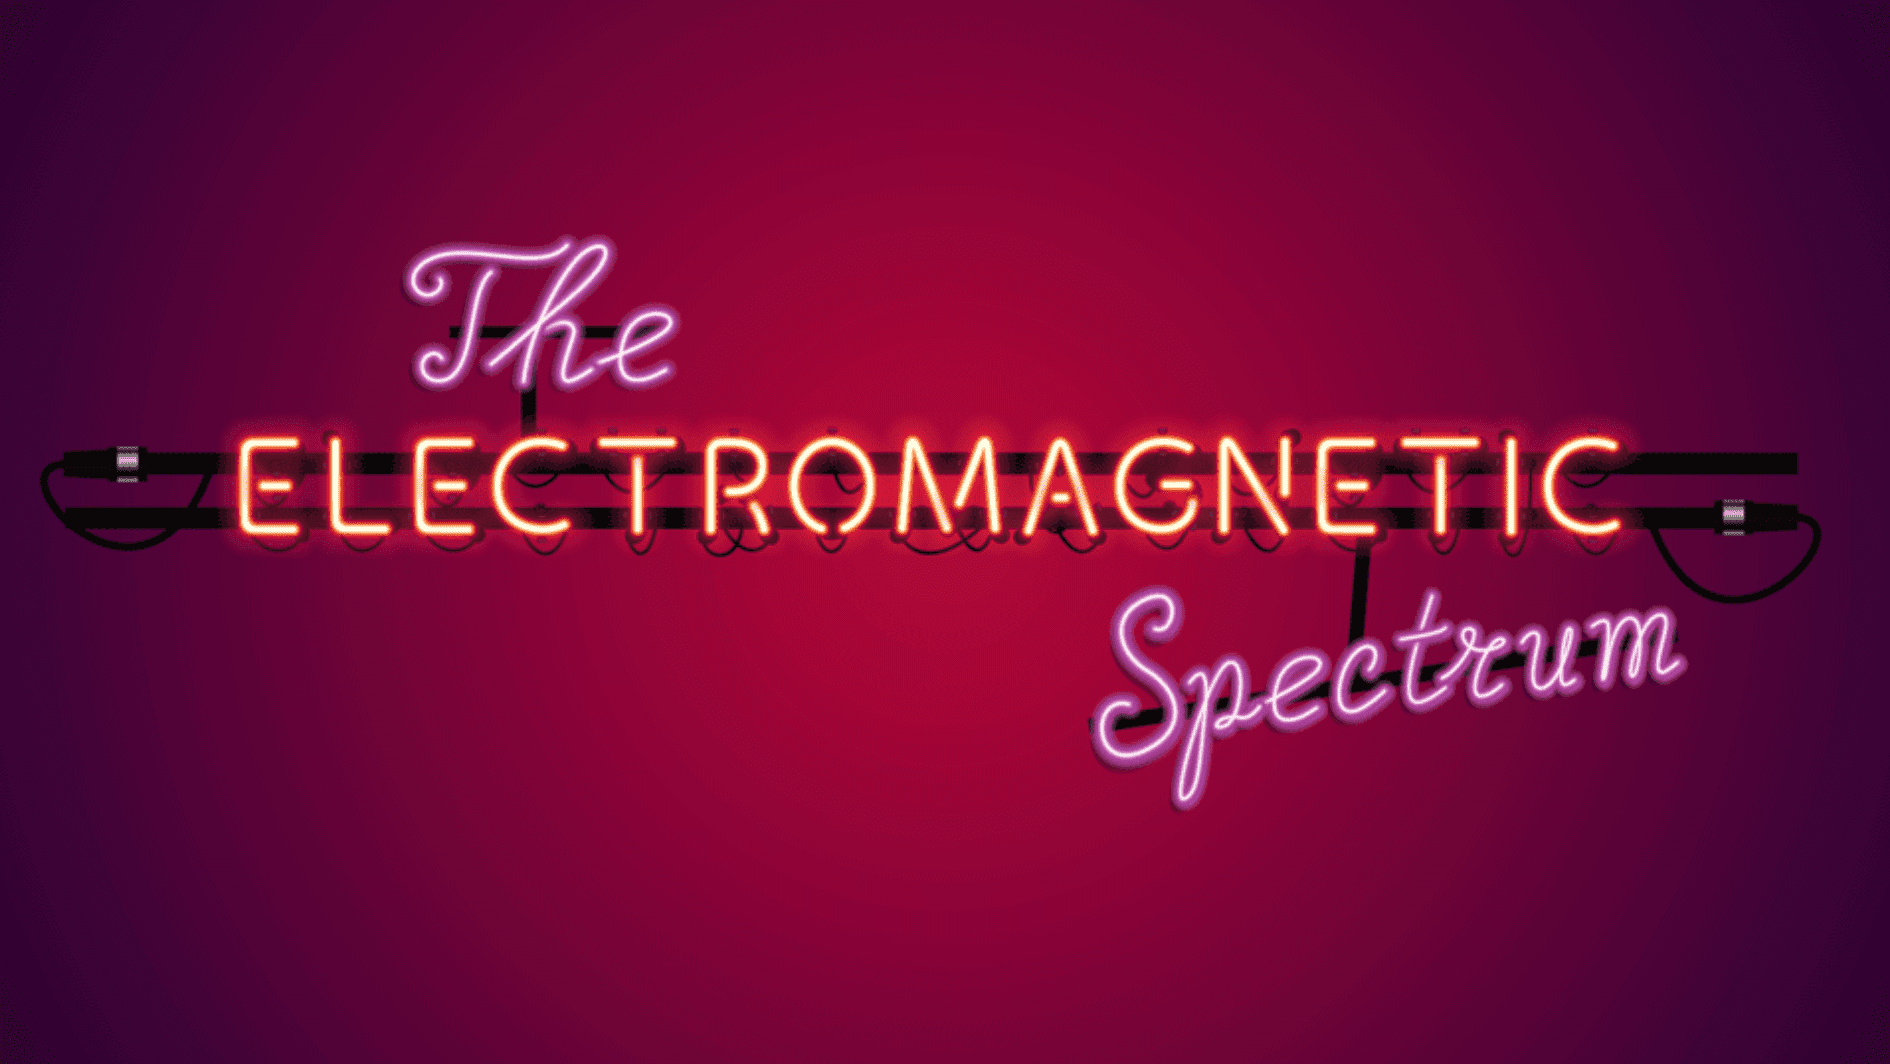 Year 9 - The Electromagnetic Spectrum Presentation